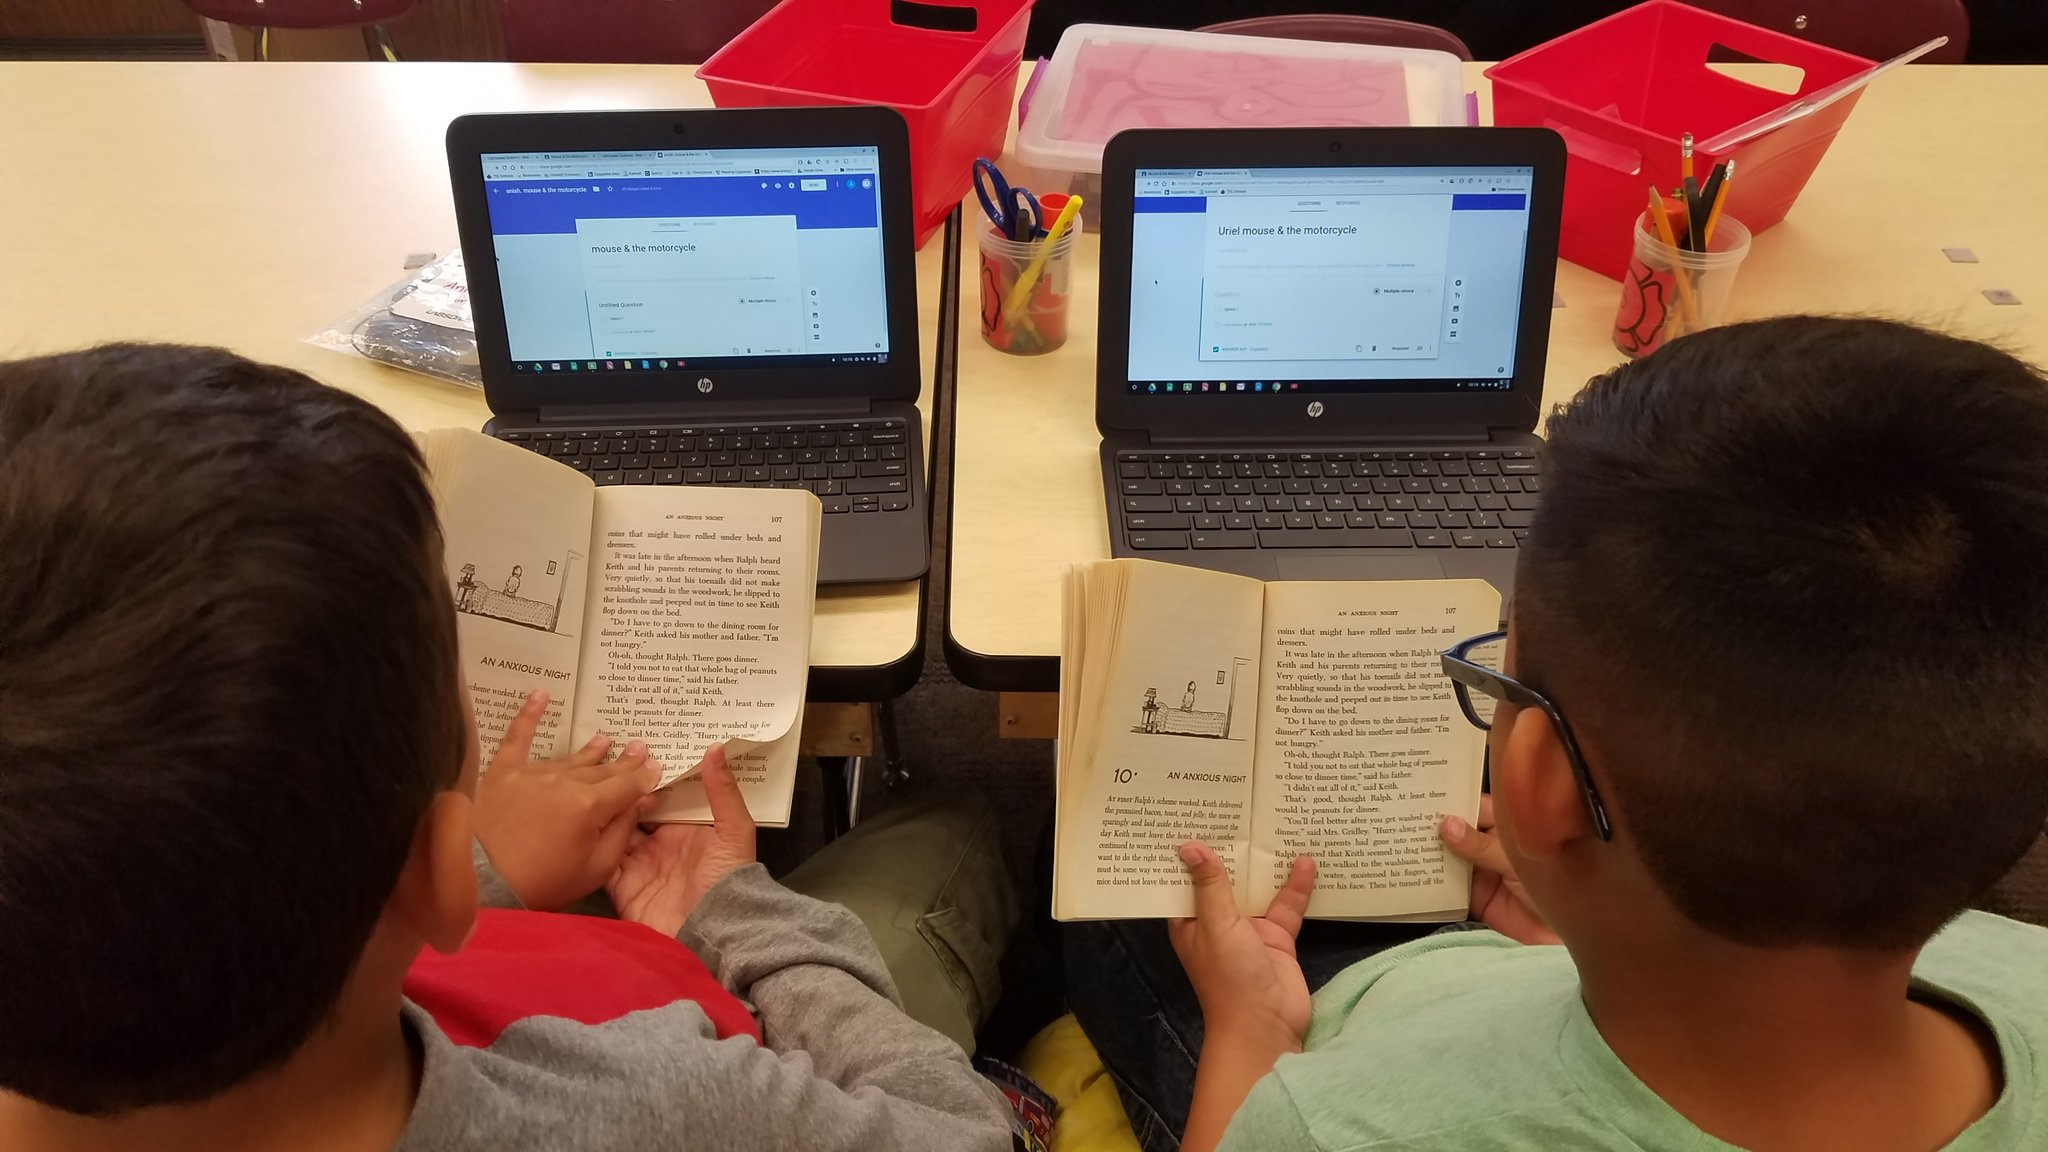 Students using Chromebook image